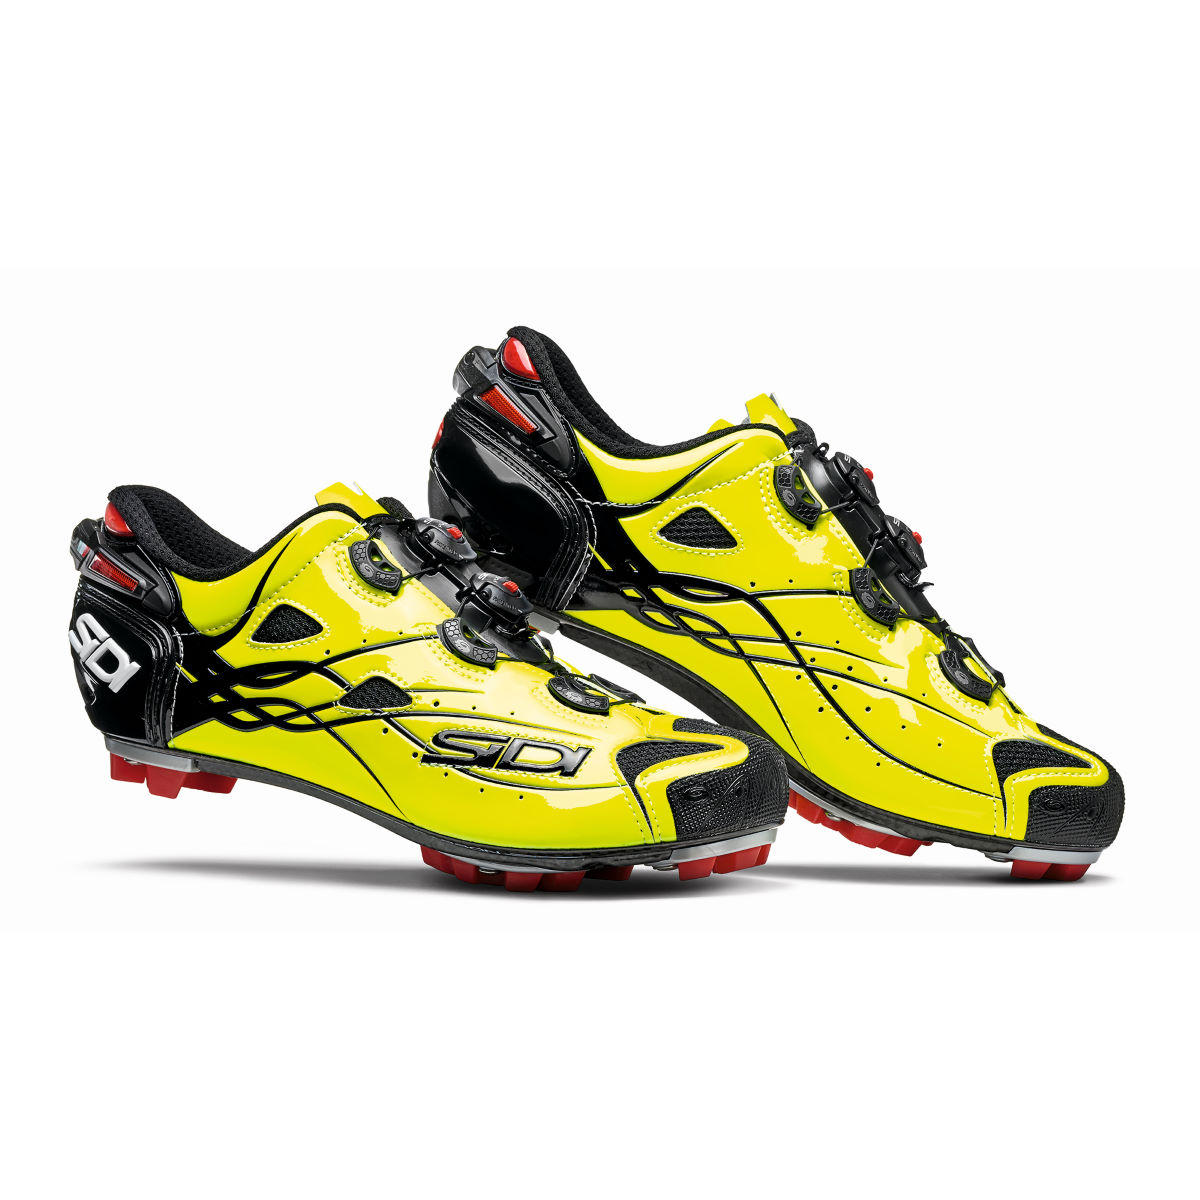 Zapatillas de MTB Sidi Tiger Carbon - Zapatillas MTB